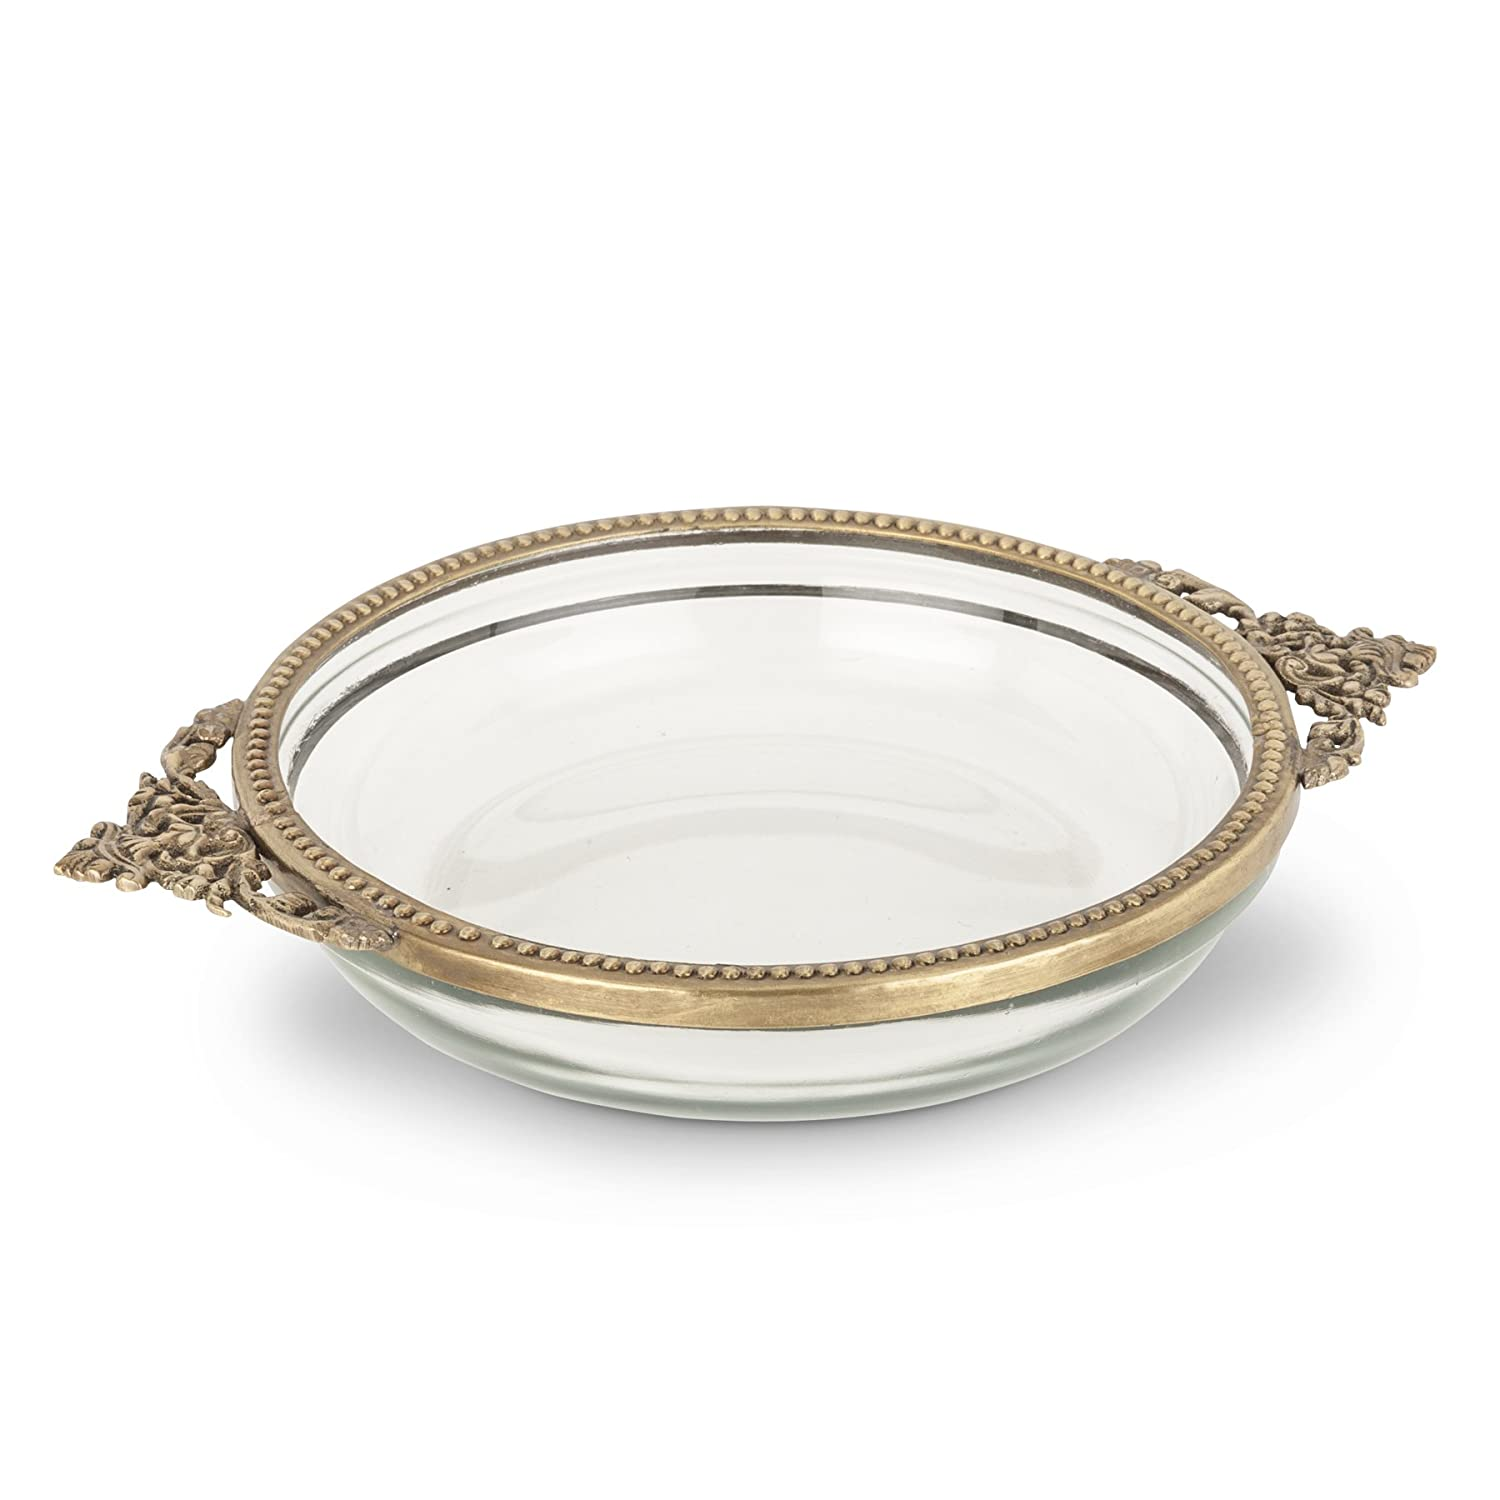 Abbott Collection Home Low Shallow Dish with Handles-6D Haq Brothers 34-BOUDOIR/0461